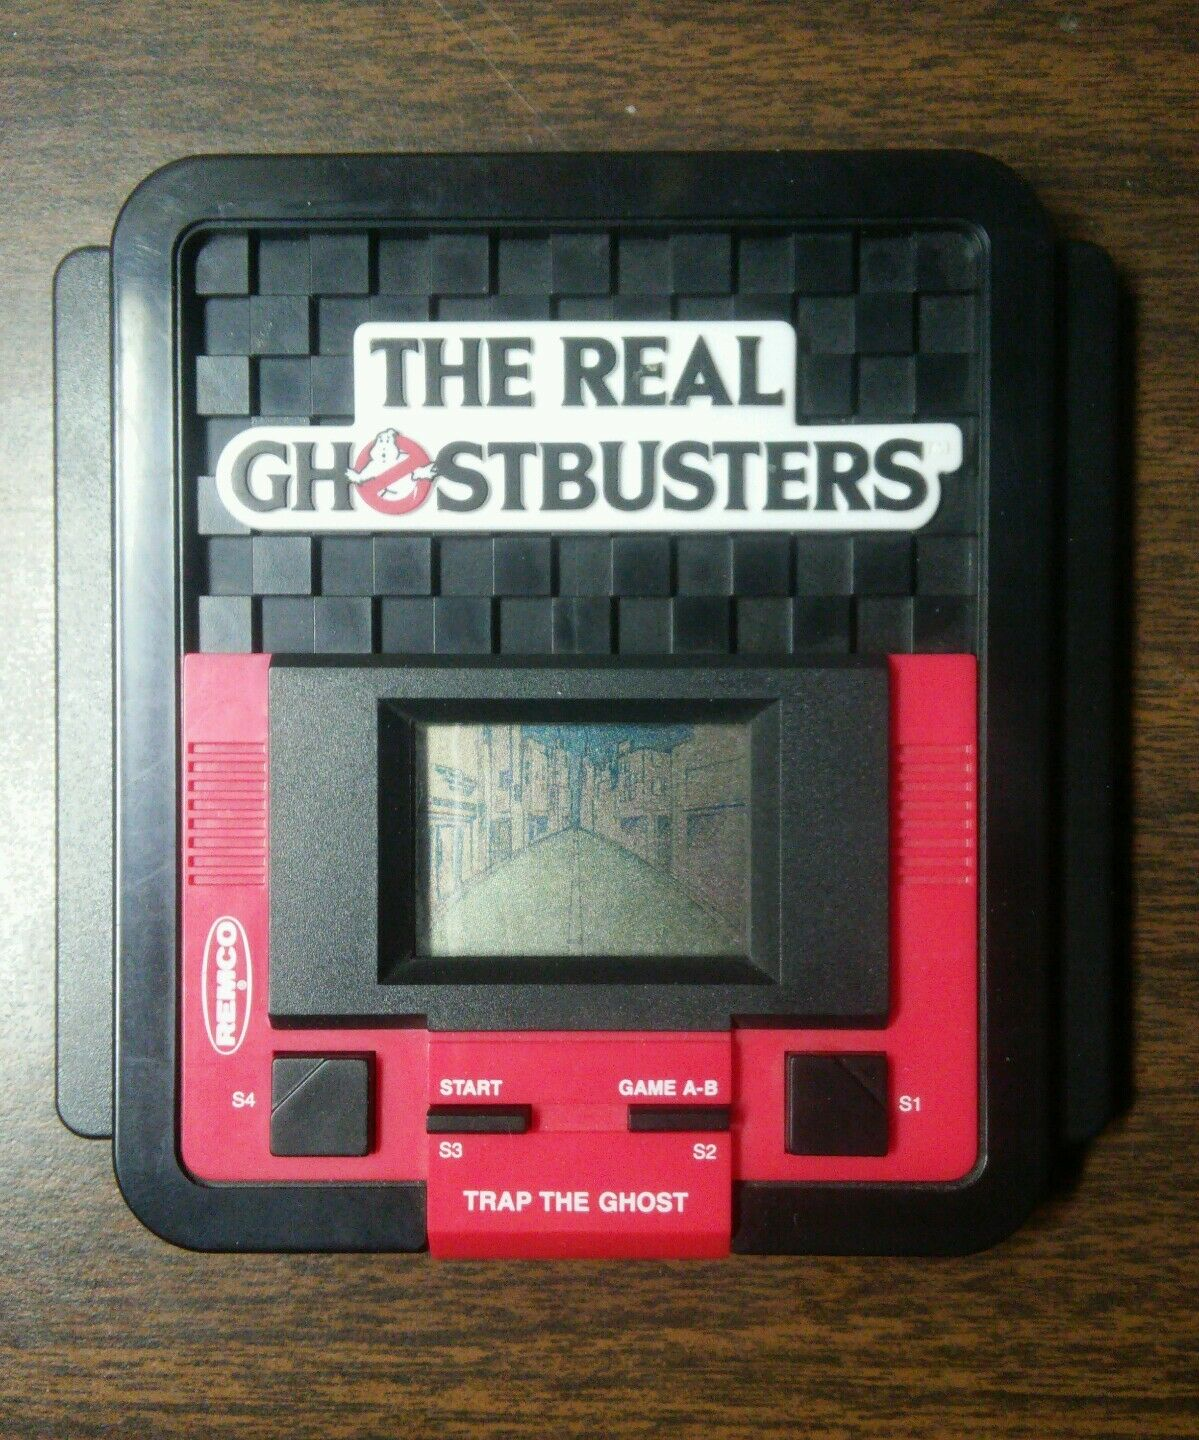 The real ghostbusters - 1988 - remco spielzeug